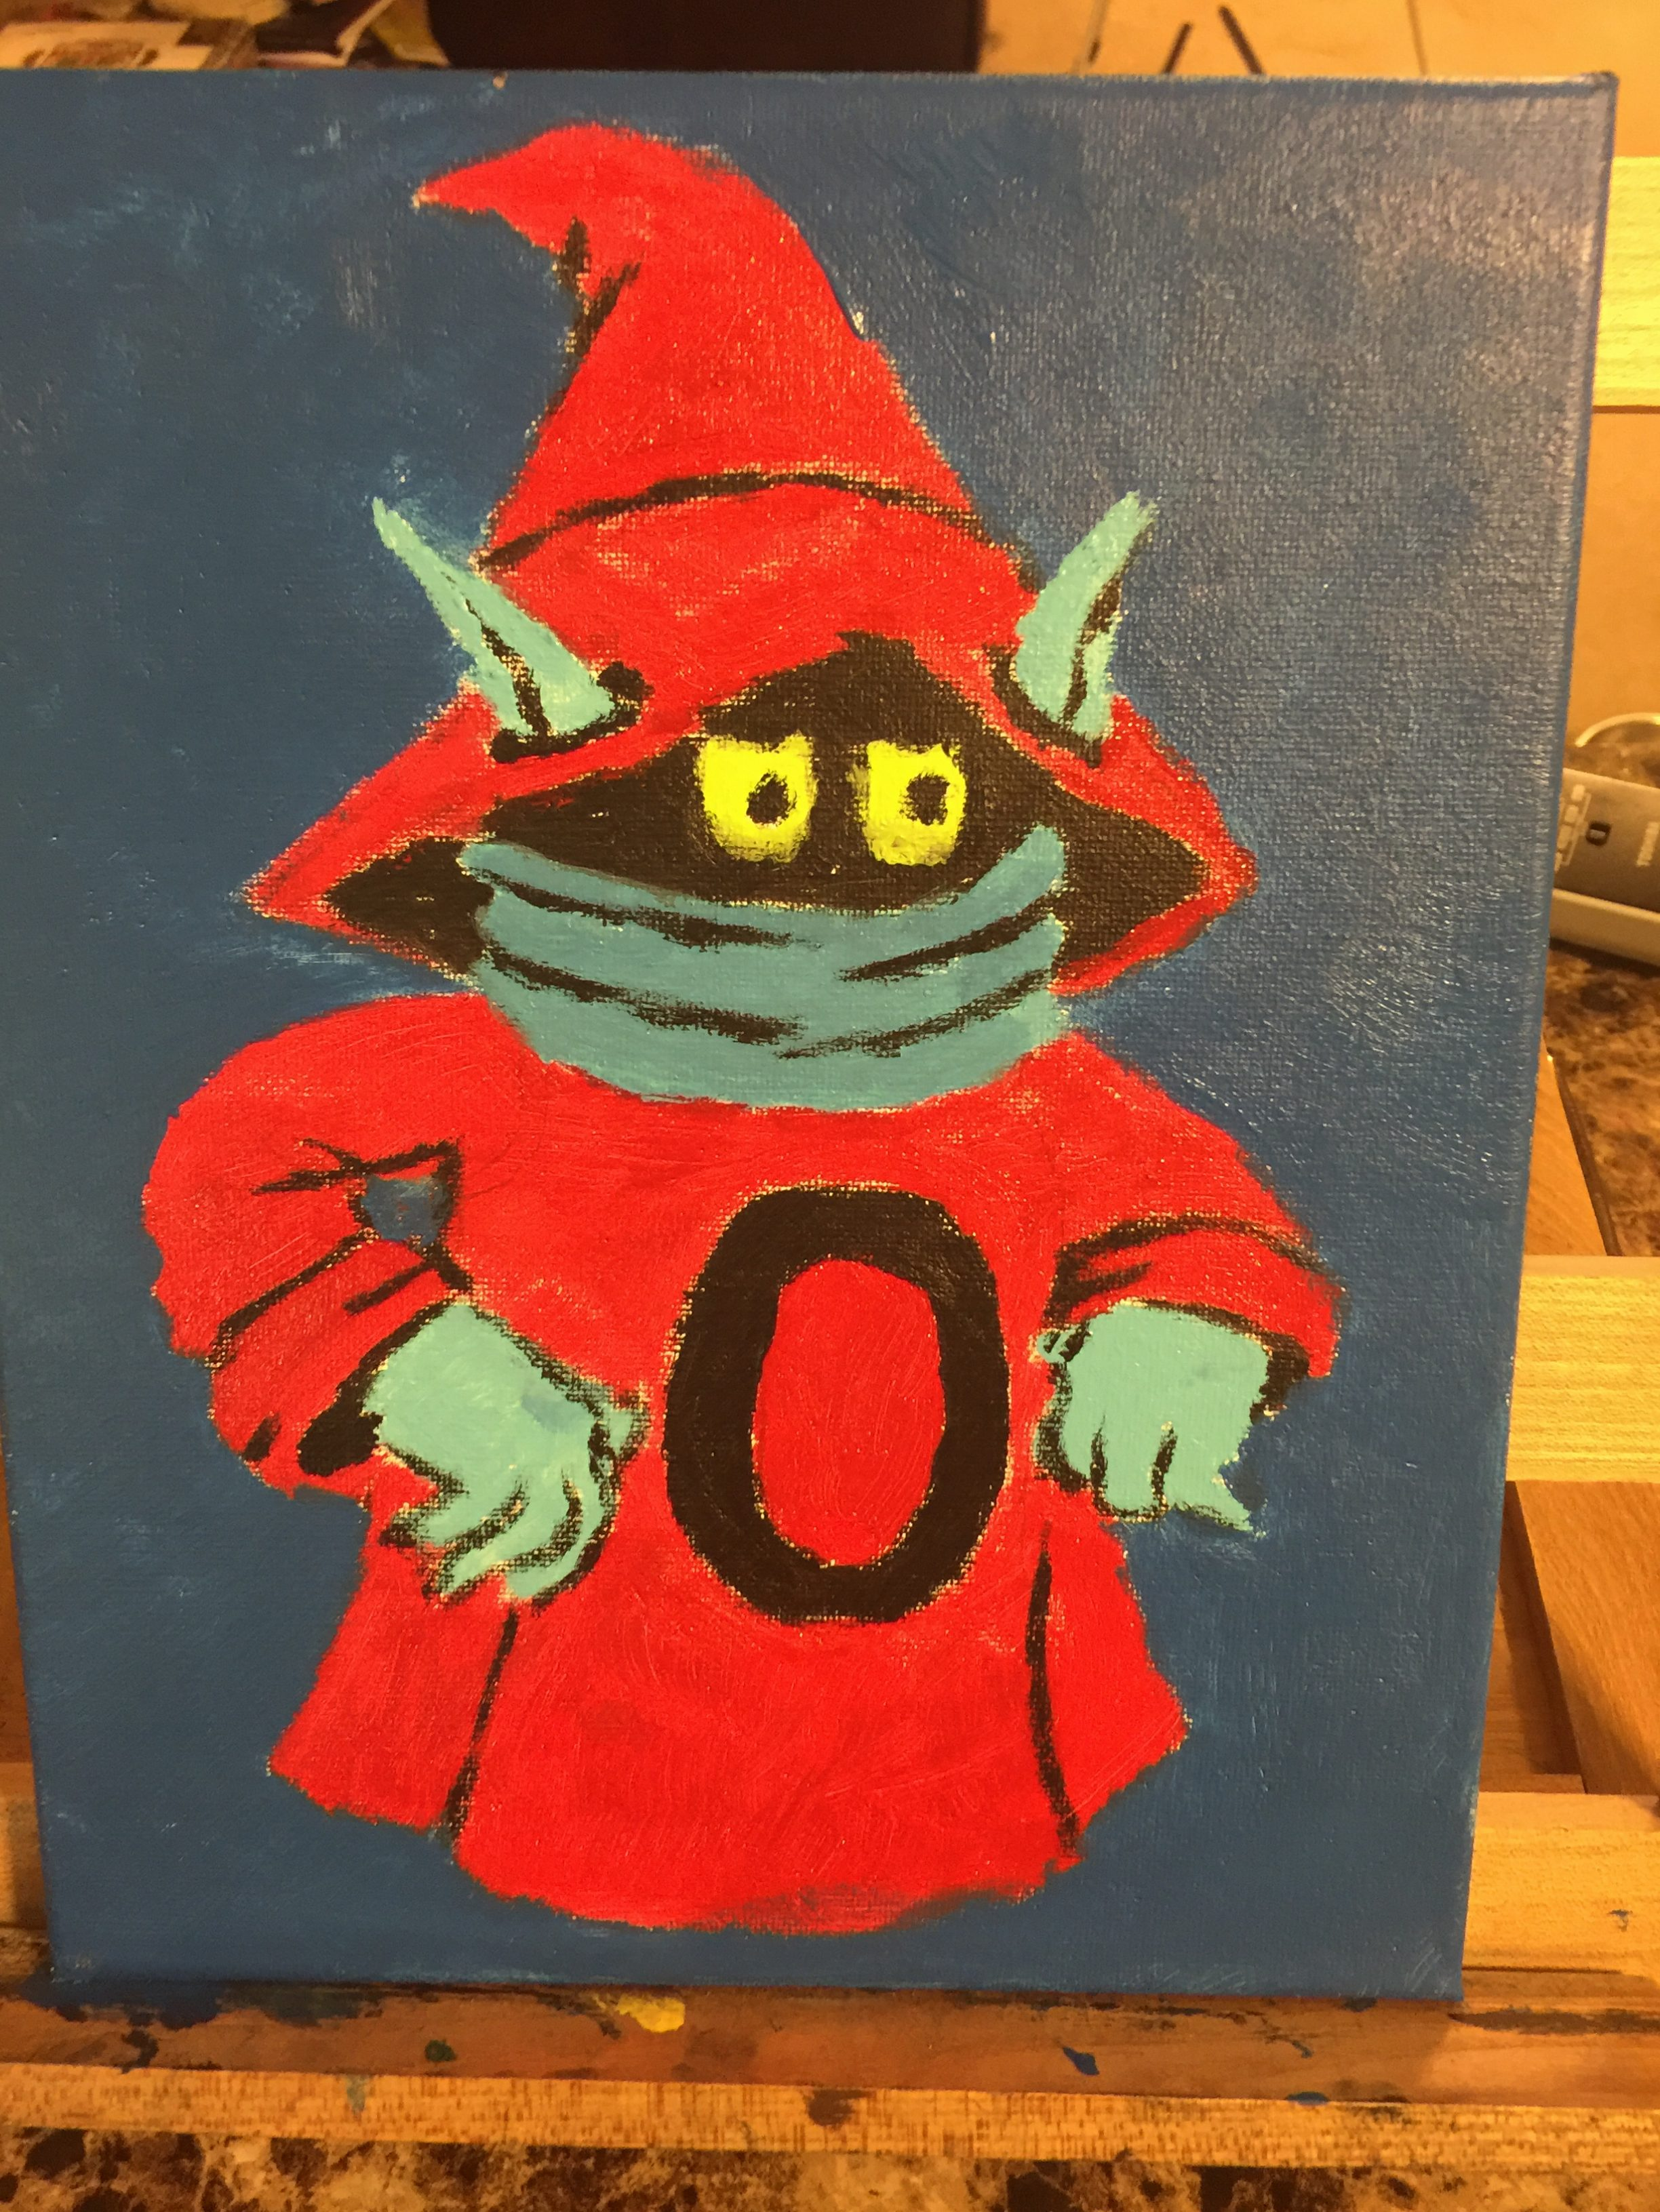 Orko the magnificent